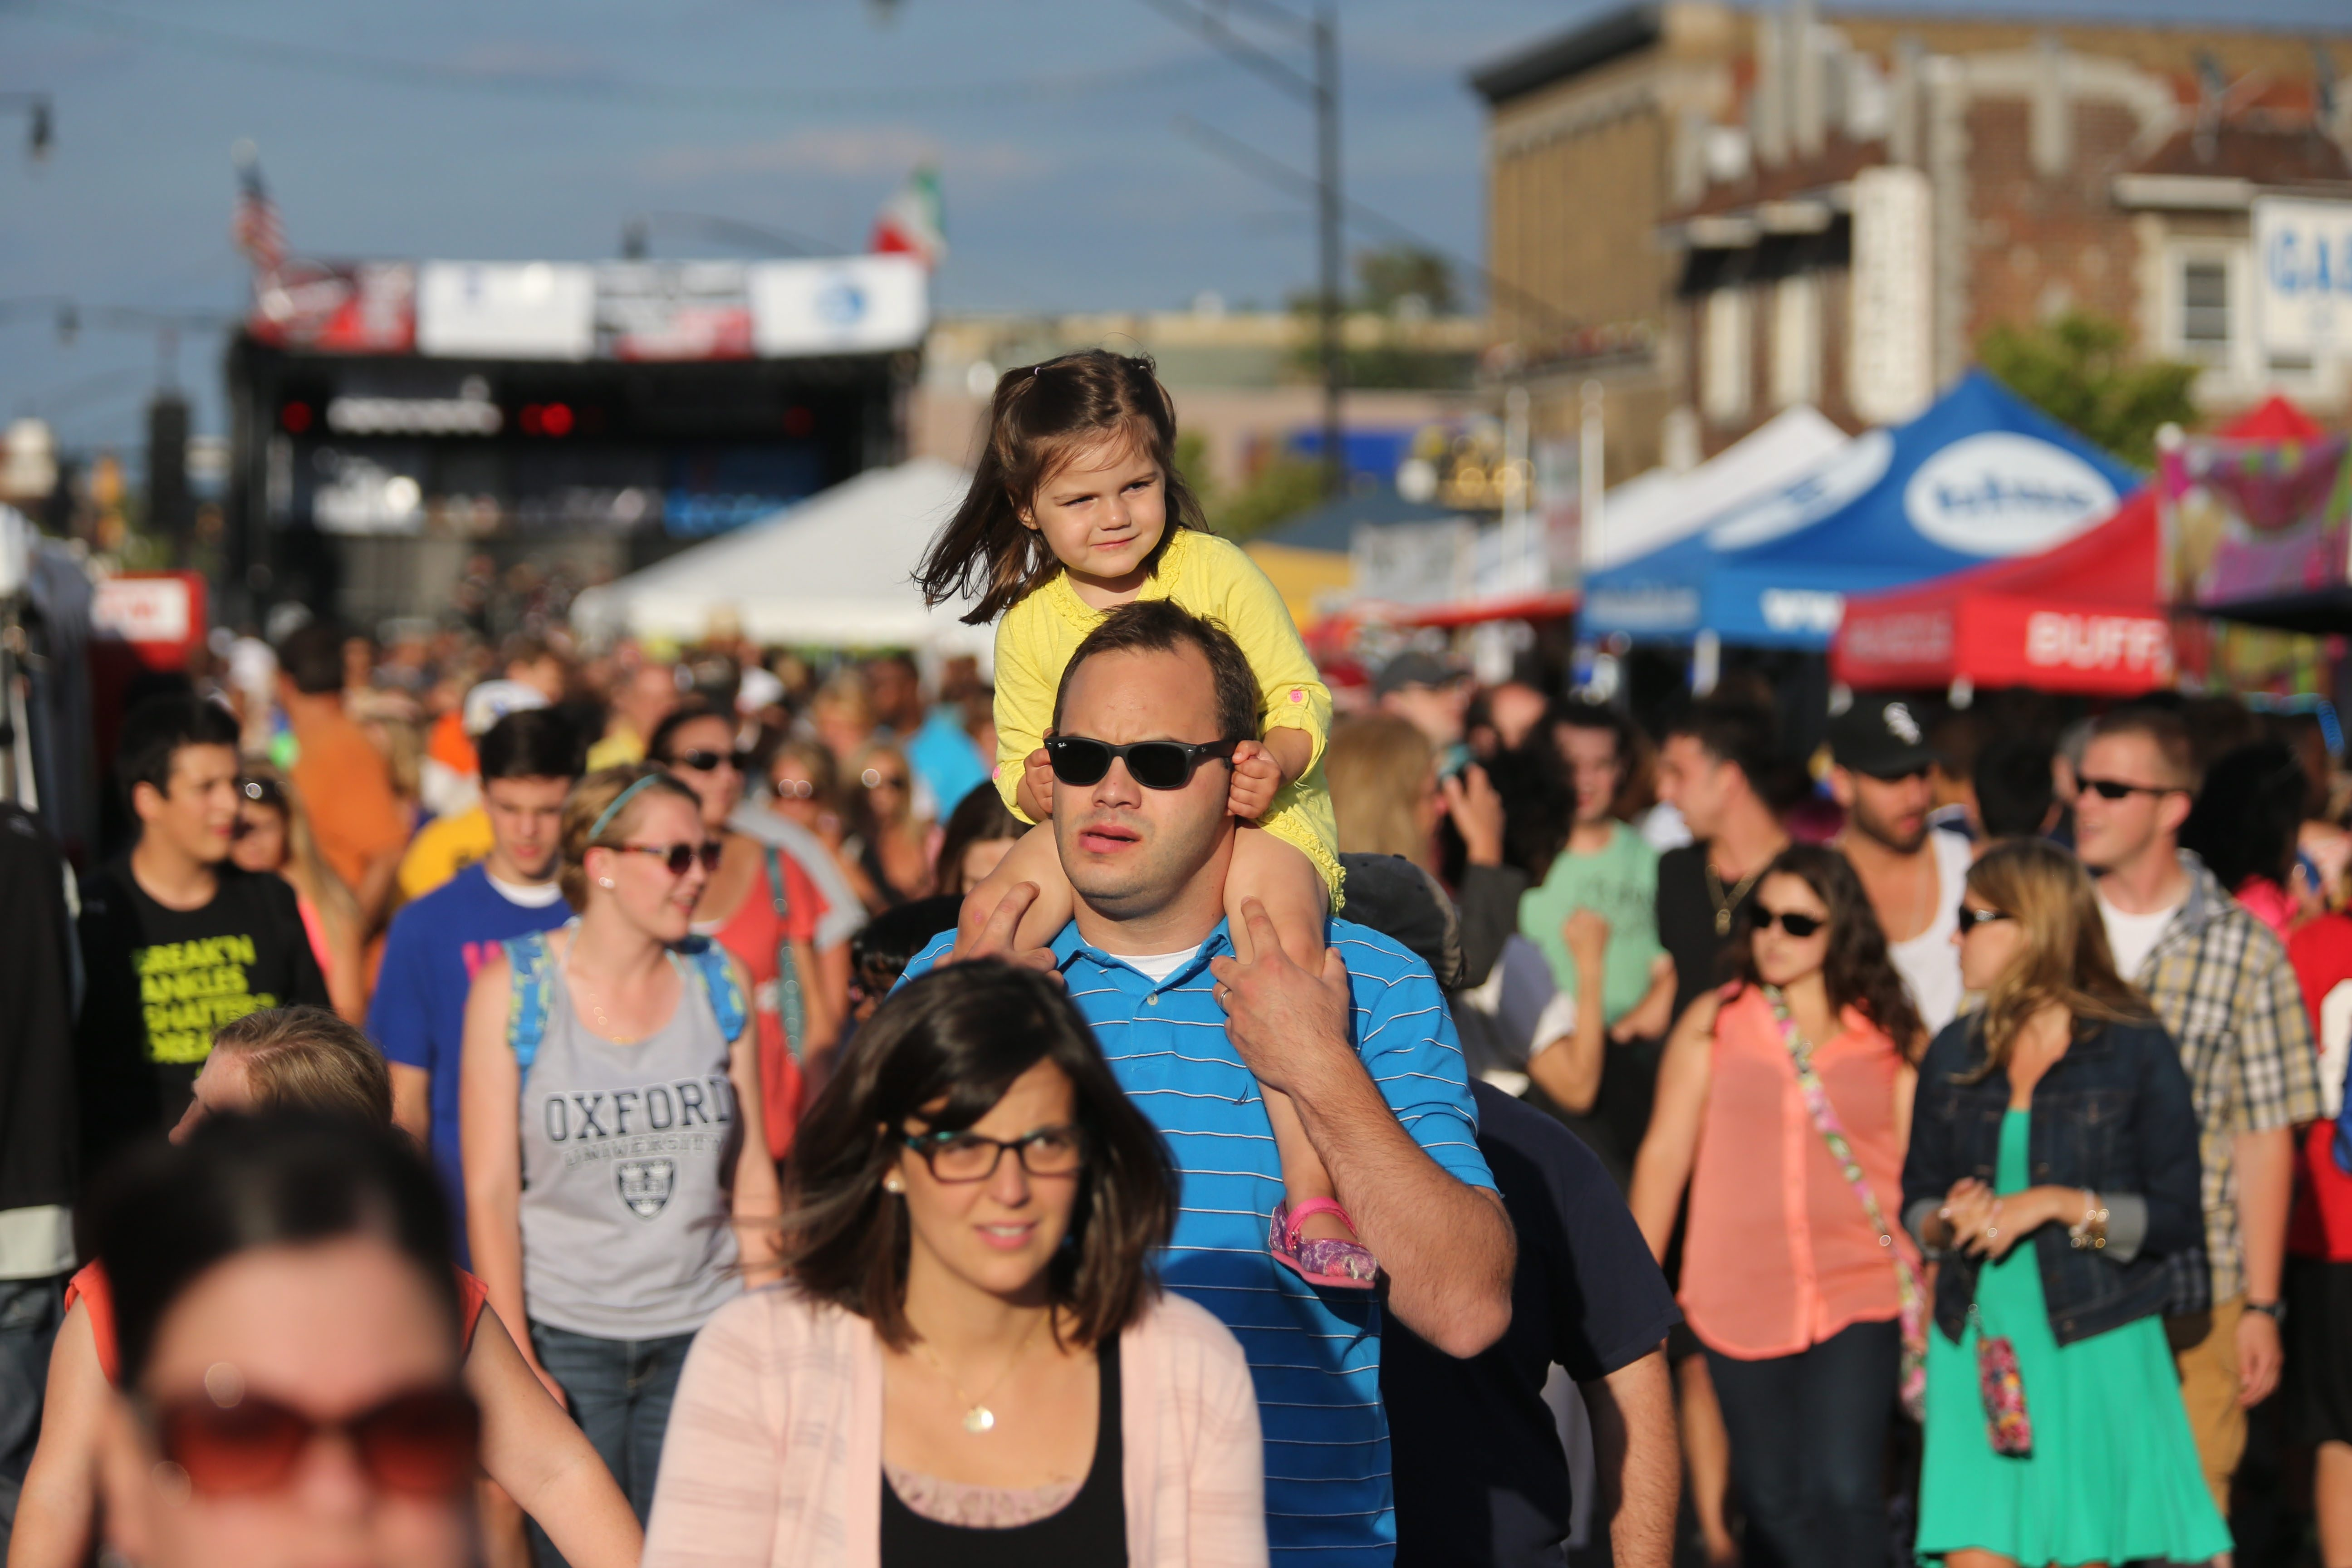 Mark Shepard, of Buffalo, carries his daughter Nora, 3, on his shoulders, along Hertel Avenue on Thursday, the first day of the Italian Heritage Festival on Hertel Avenue.